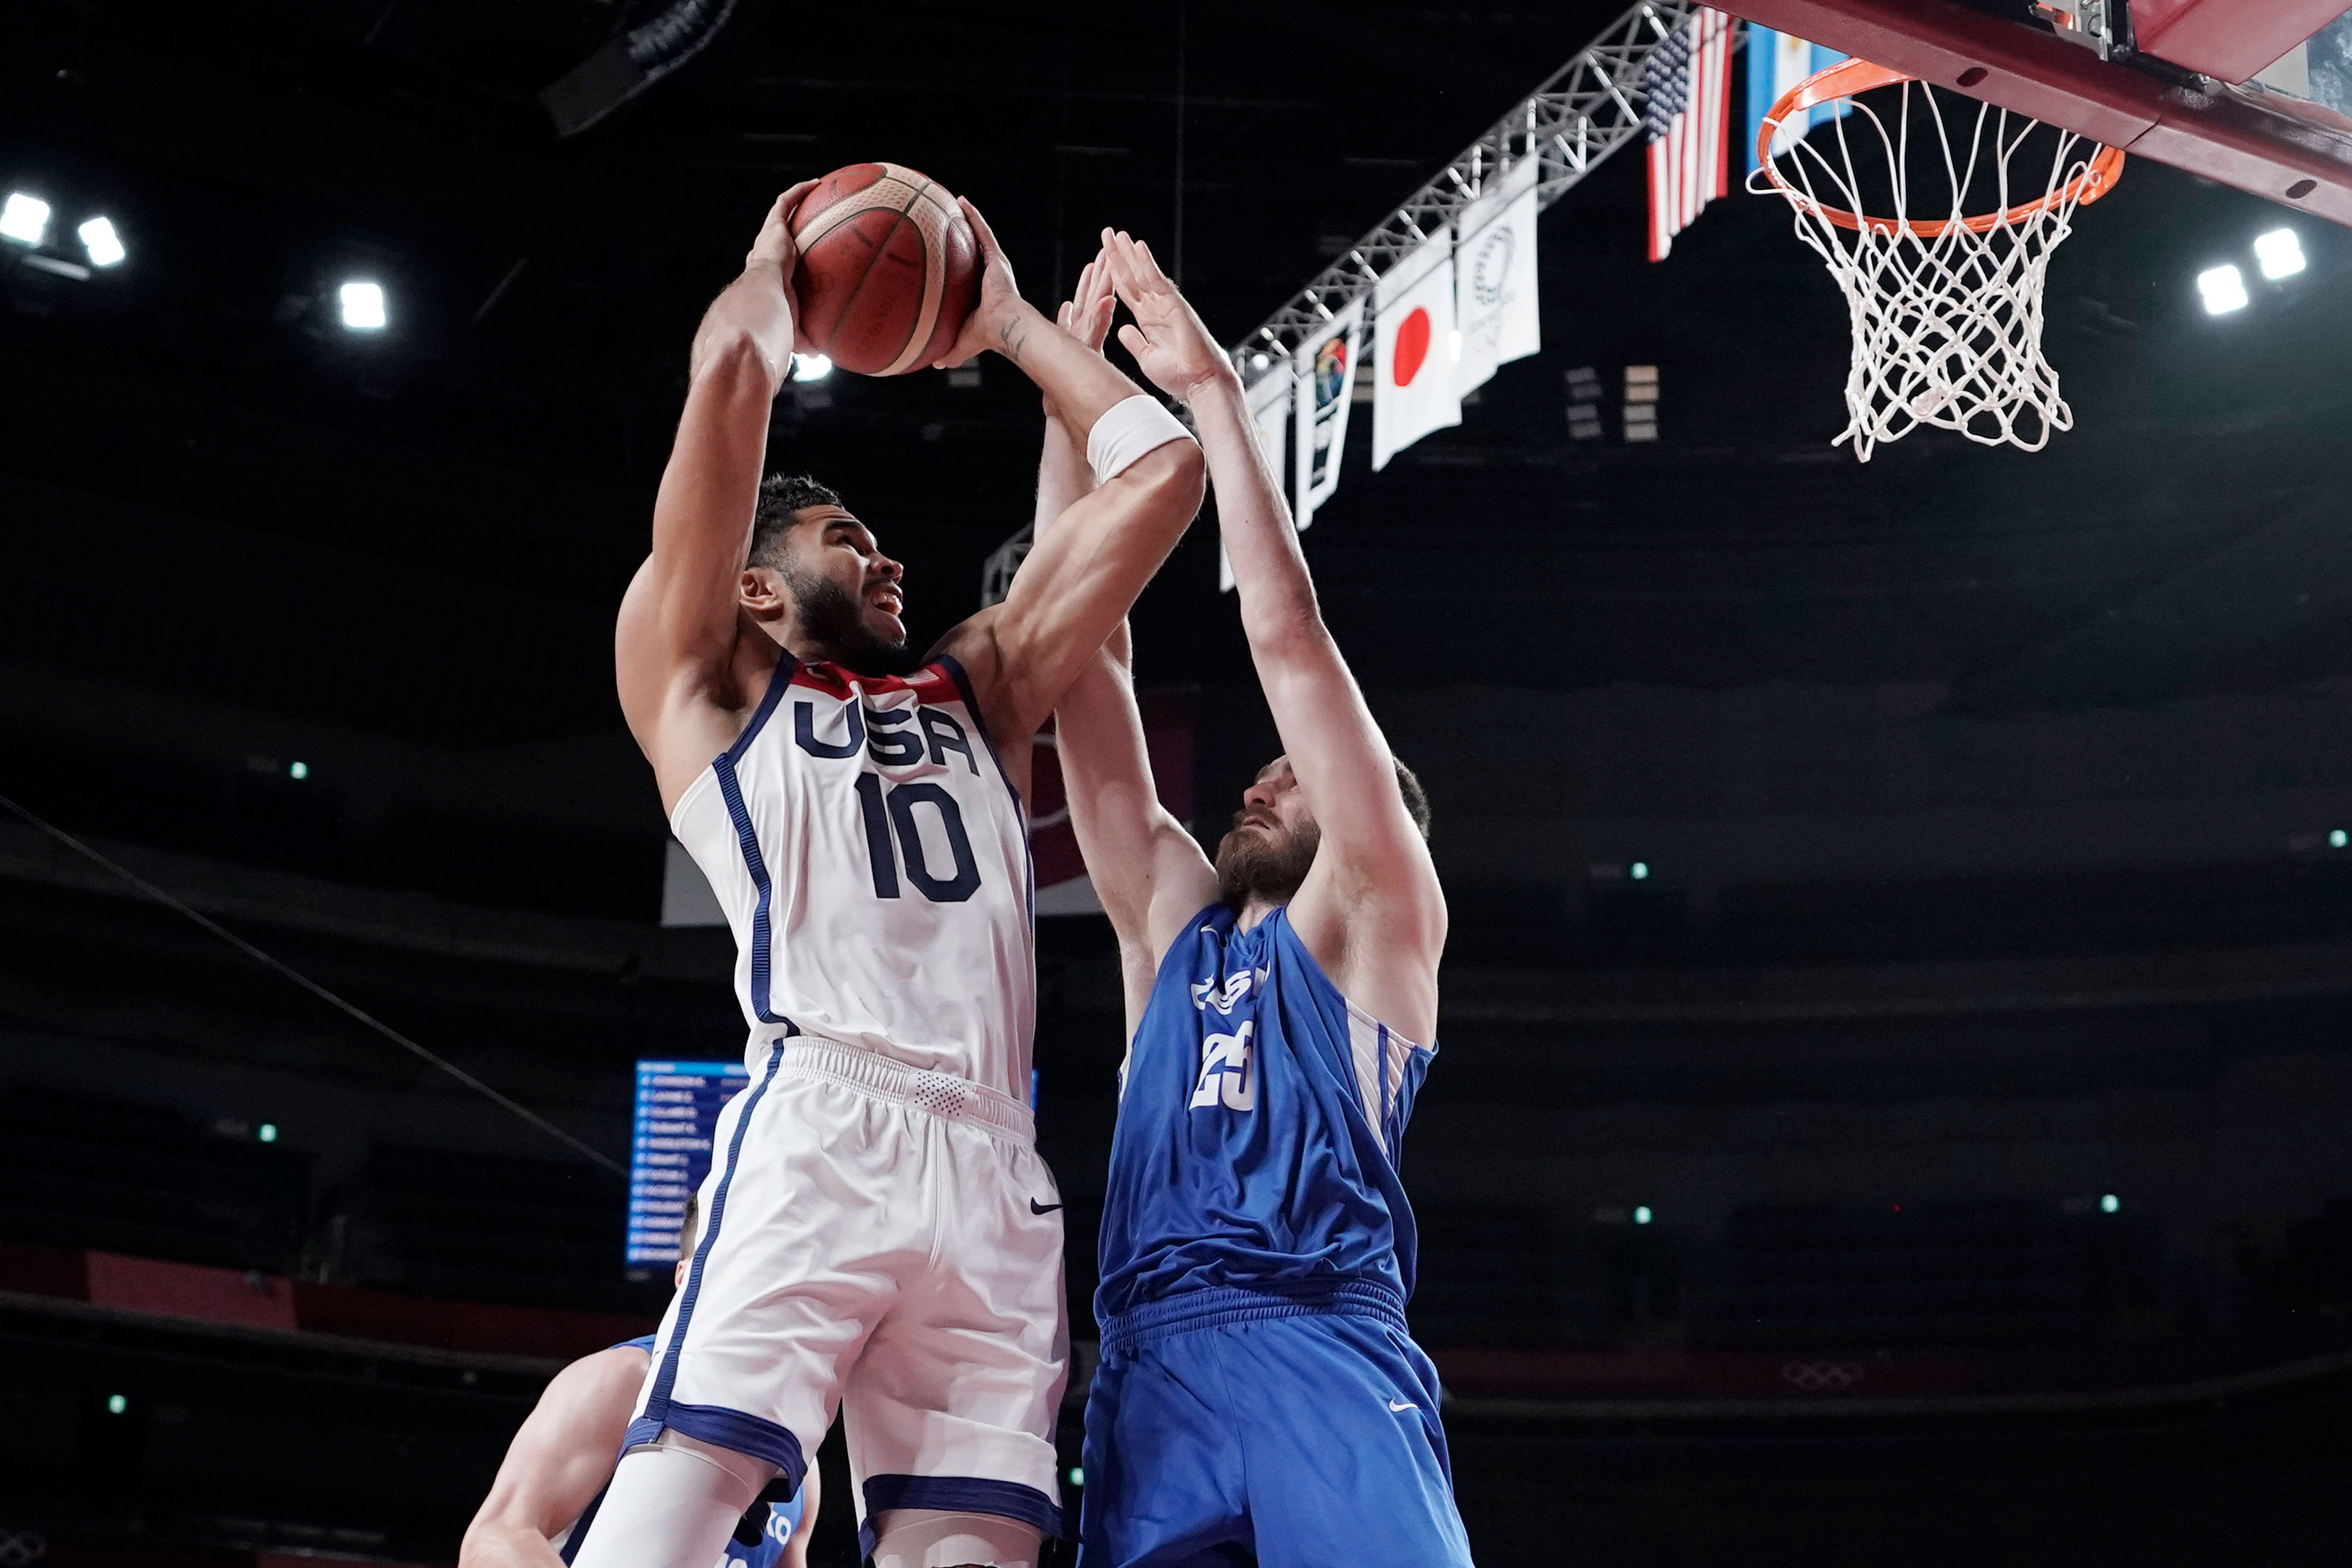 Team USA's Jayson Tatum shoots over Czech Republic's David Jelined during their game on July 31.